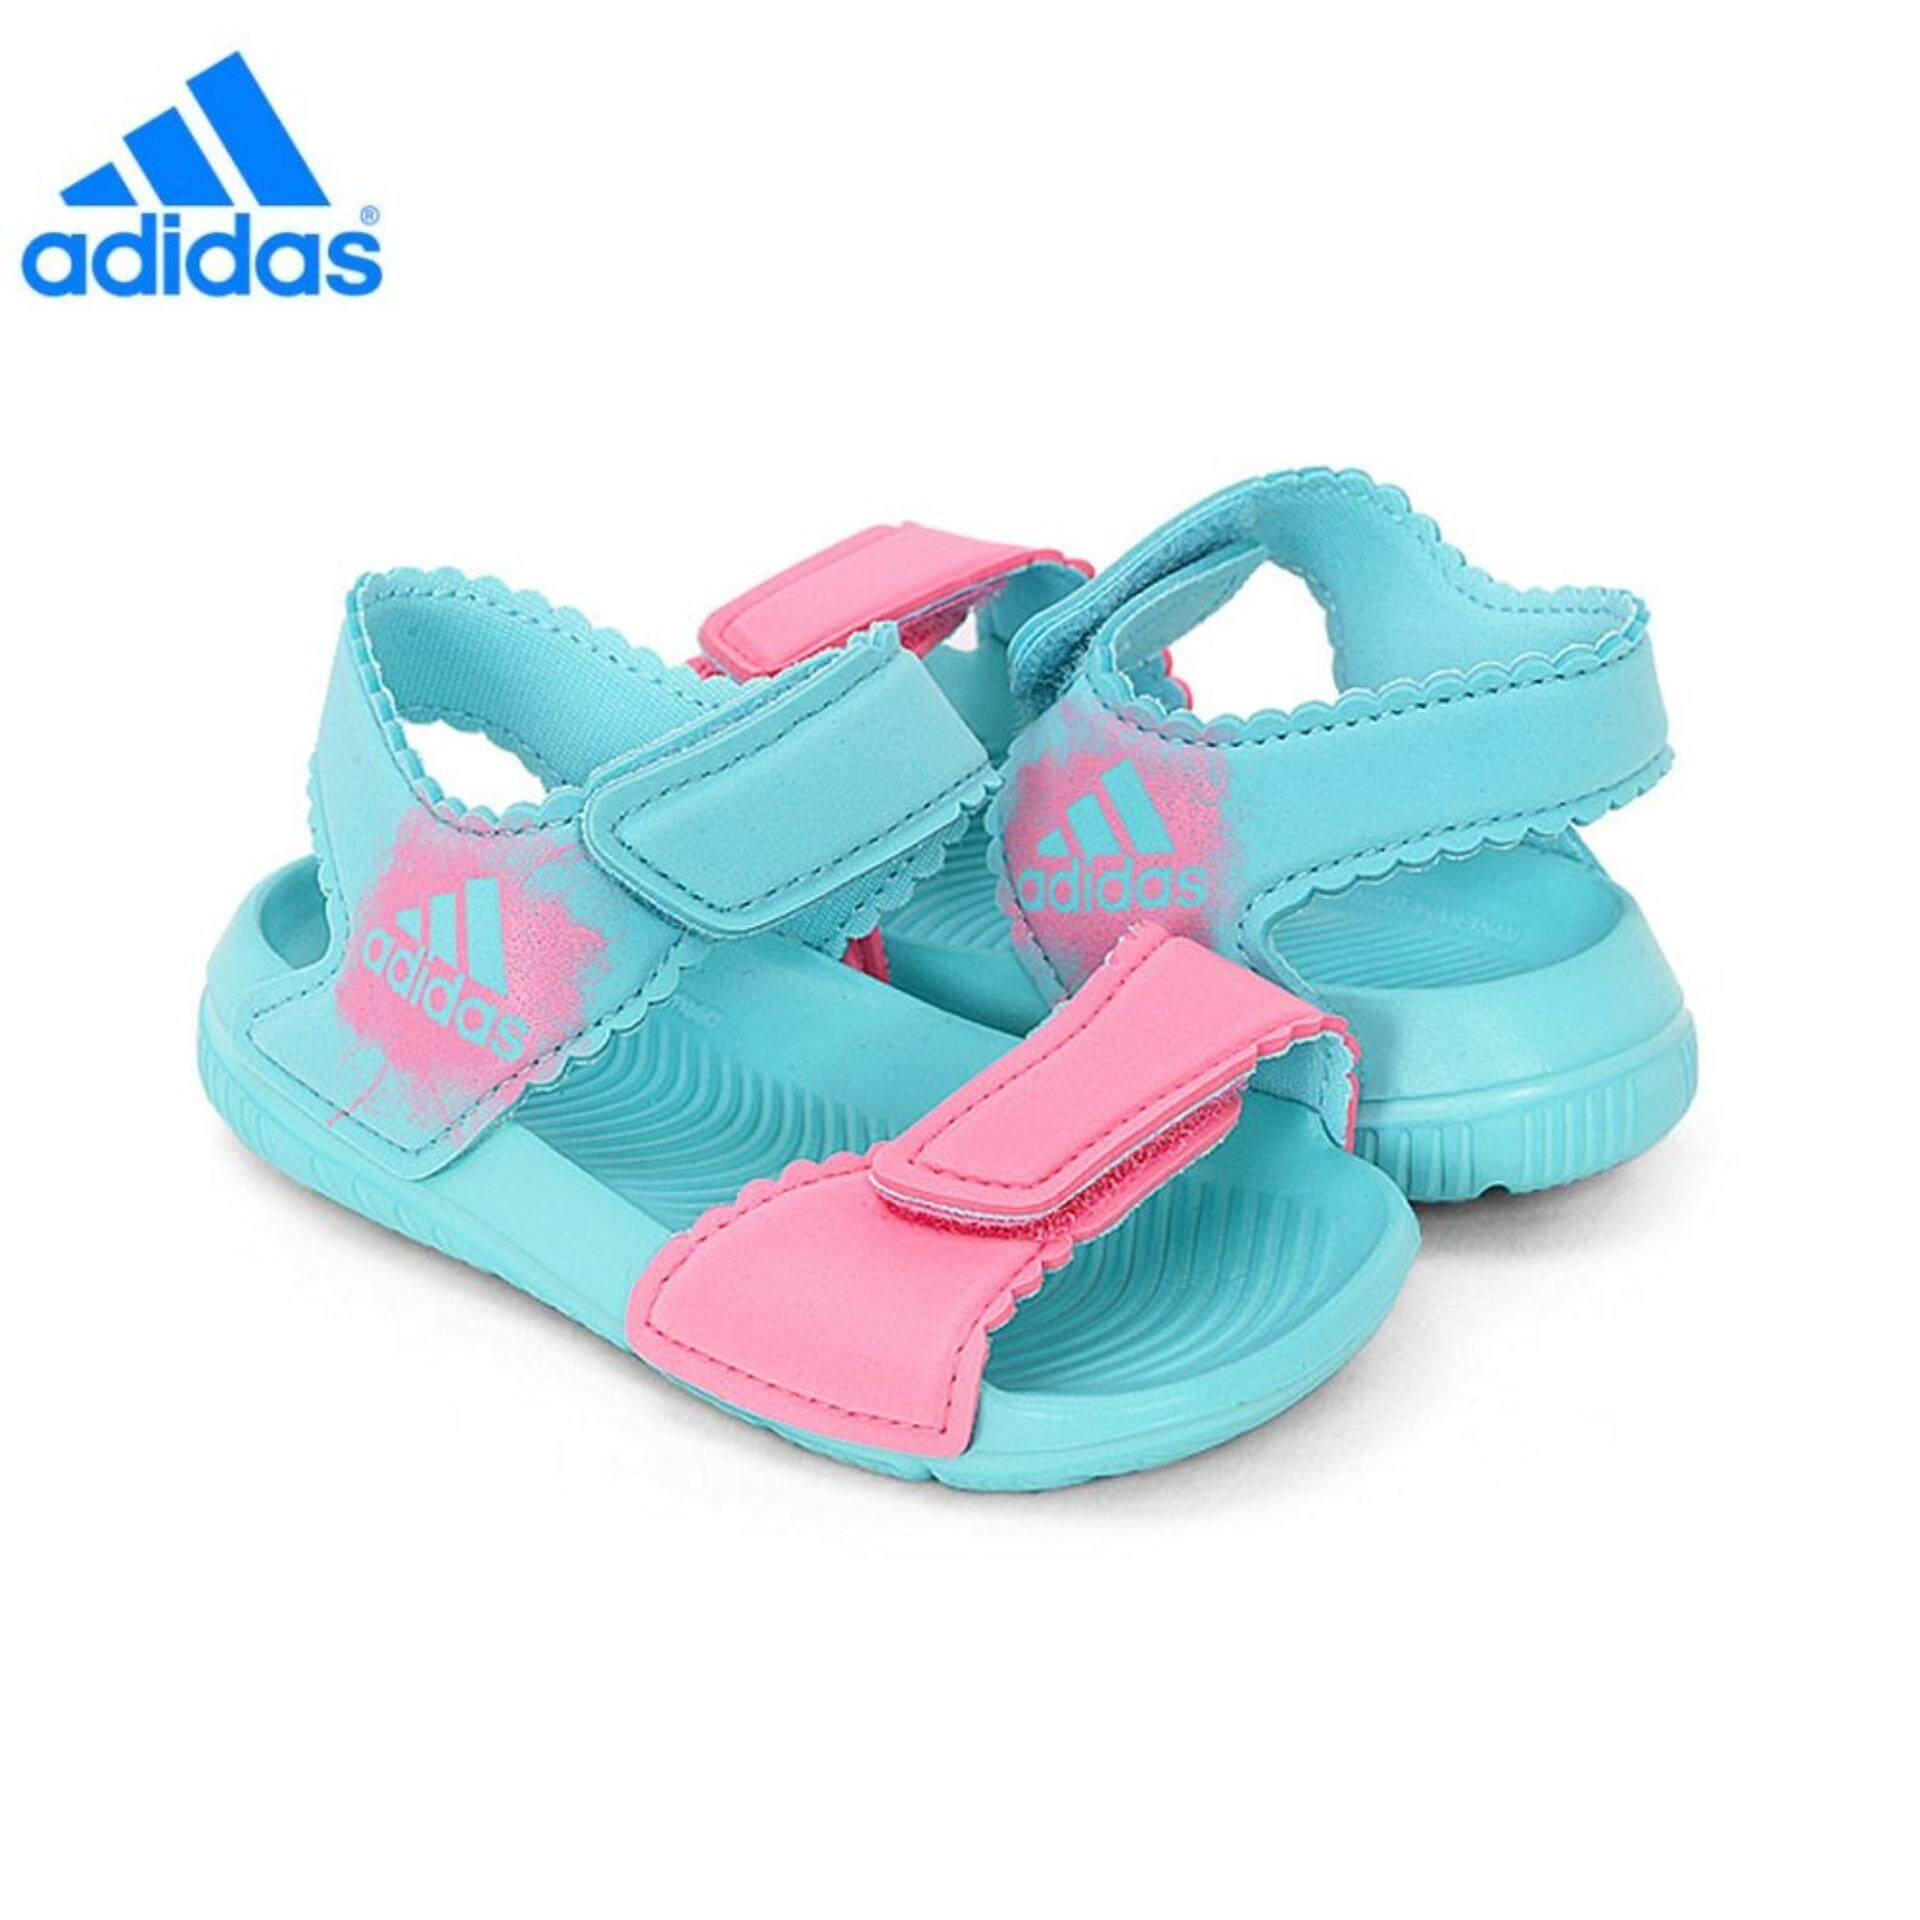 c0dacdad2ade2 Girls  Sports Shoes - Buy Girls  Sports Shoes at Best Price in Singapore